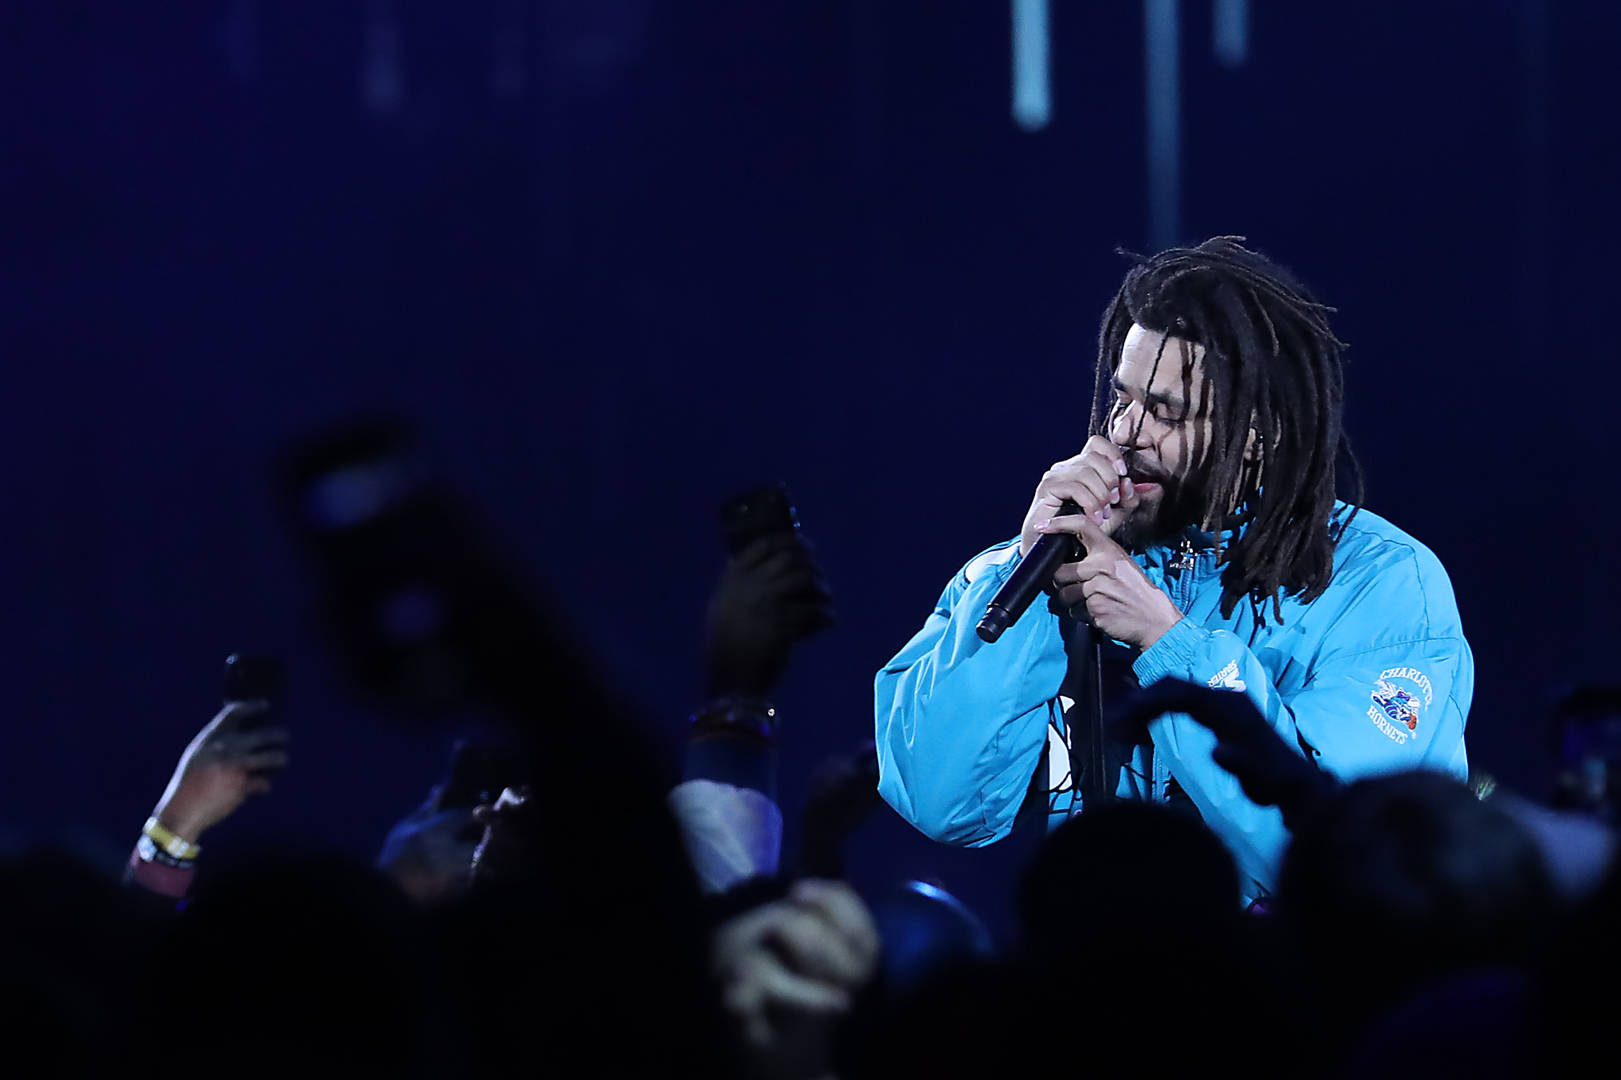 J. Cole Dreamville Festival 2020 delay rescheduled coronavirus concerns threat event North Carolina